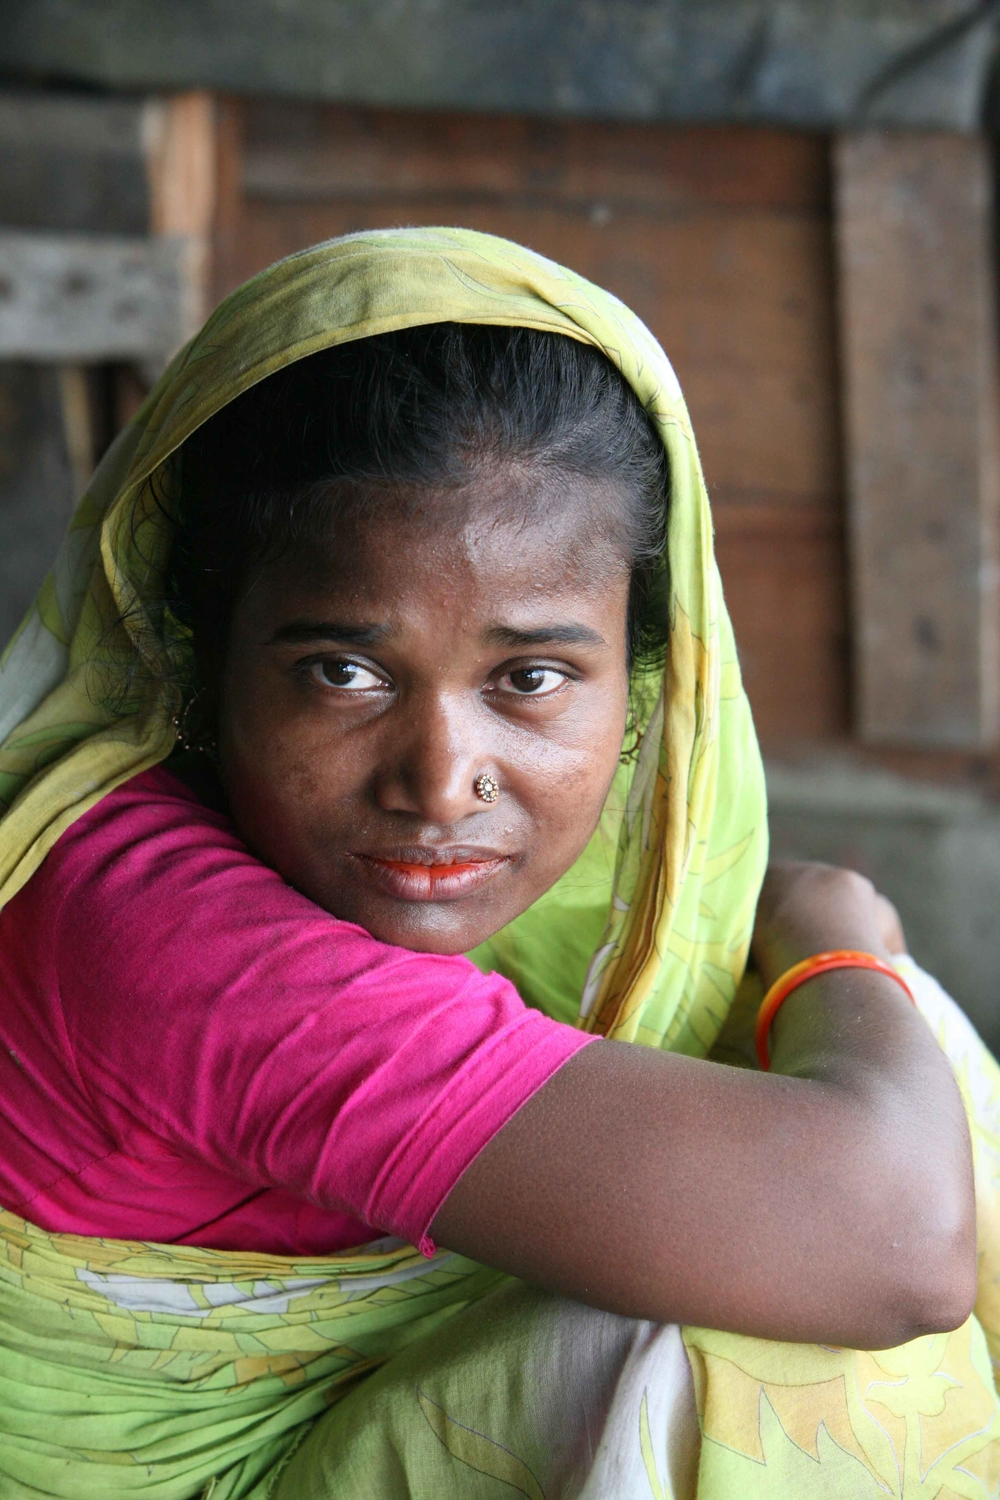 A portrait of one of the women living in the slums of Dhaka, Bangladesh, July 2007. Slums tend to house domestic migrants, sex workers and transport workers.